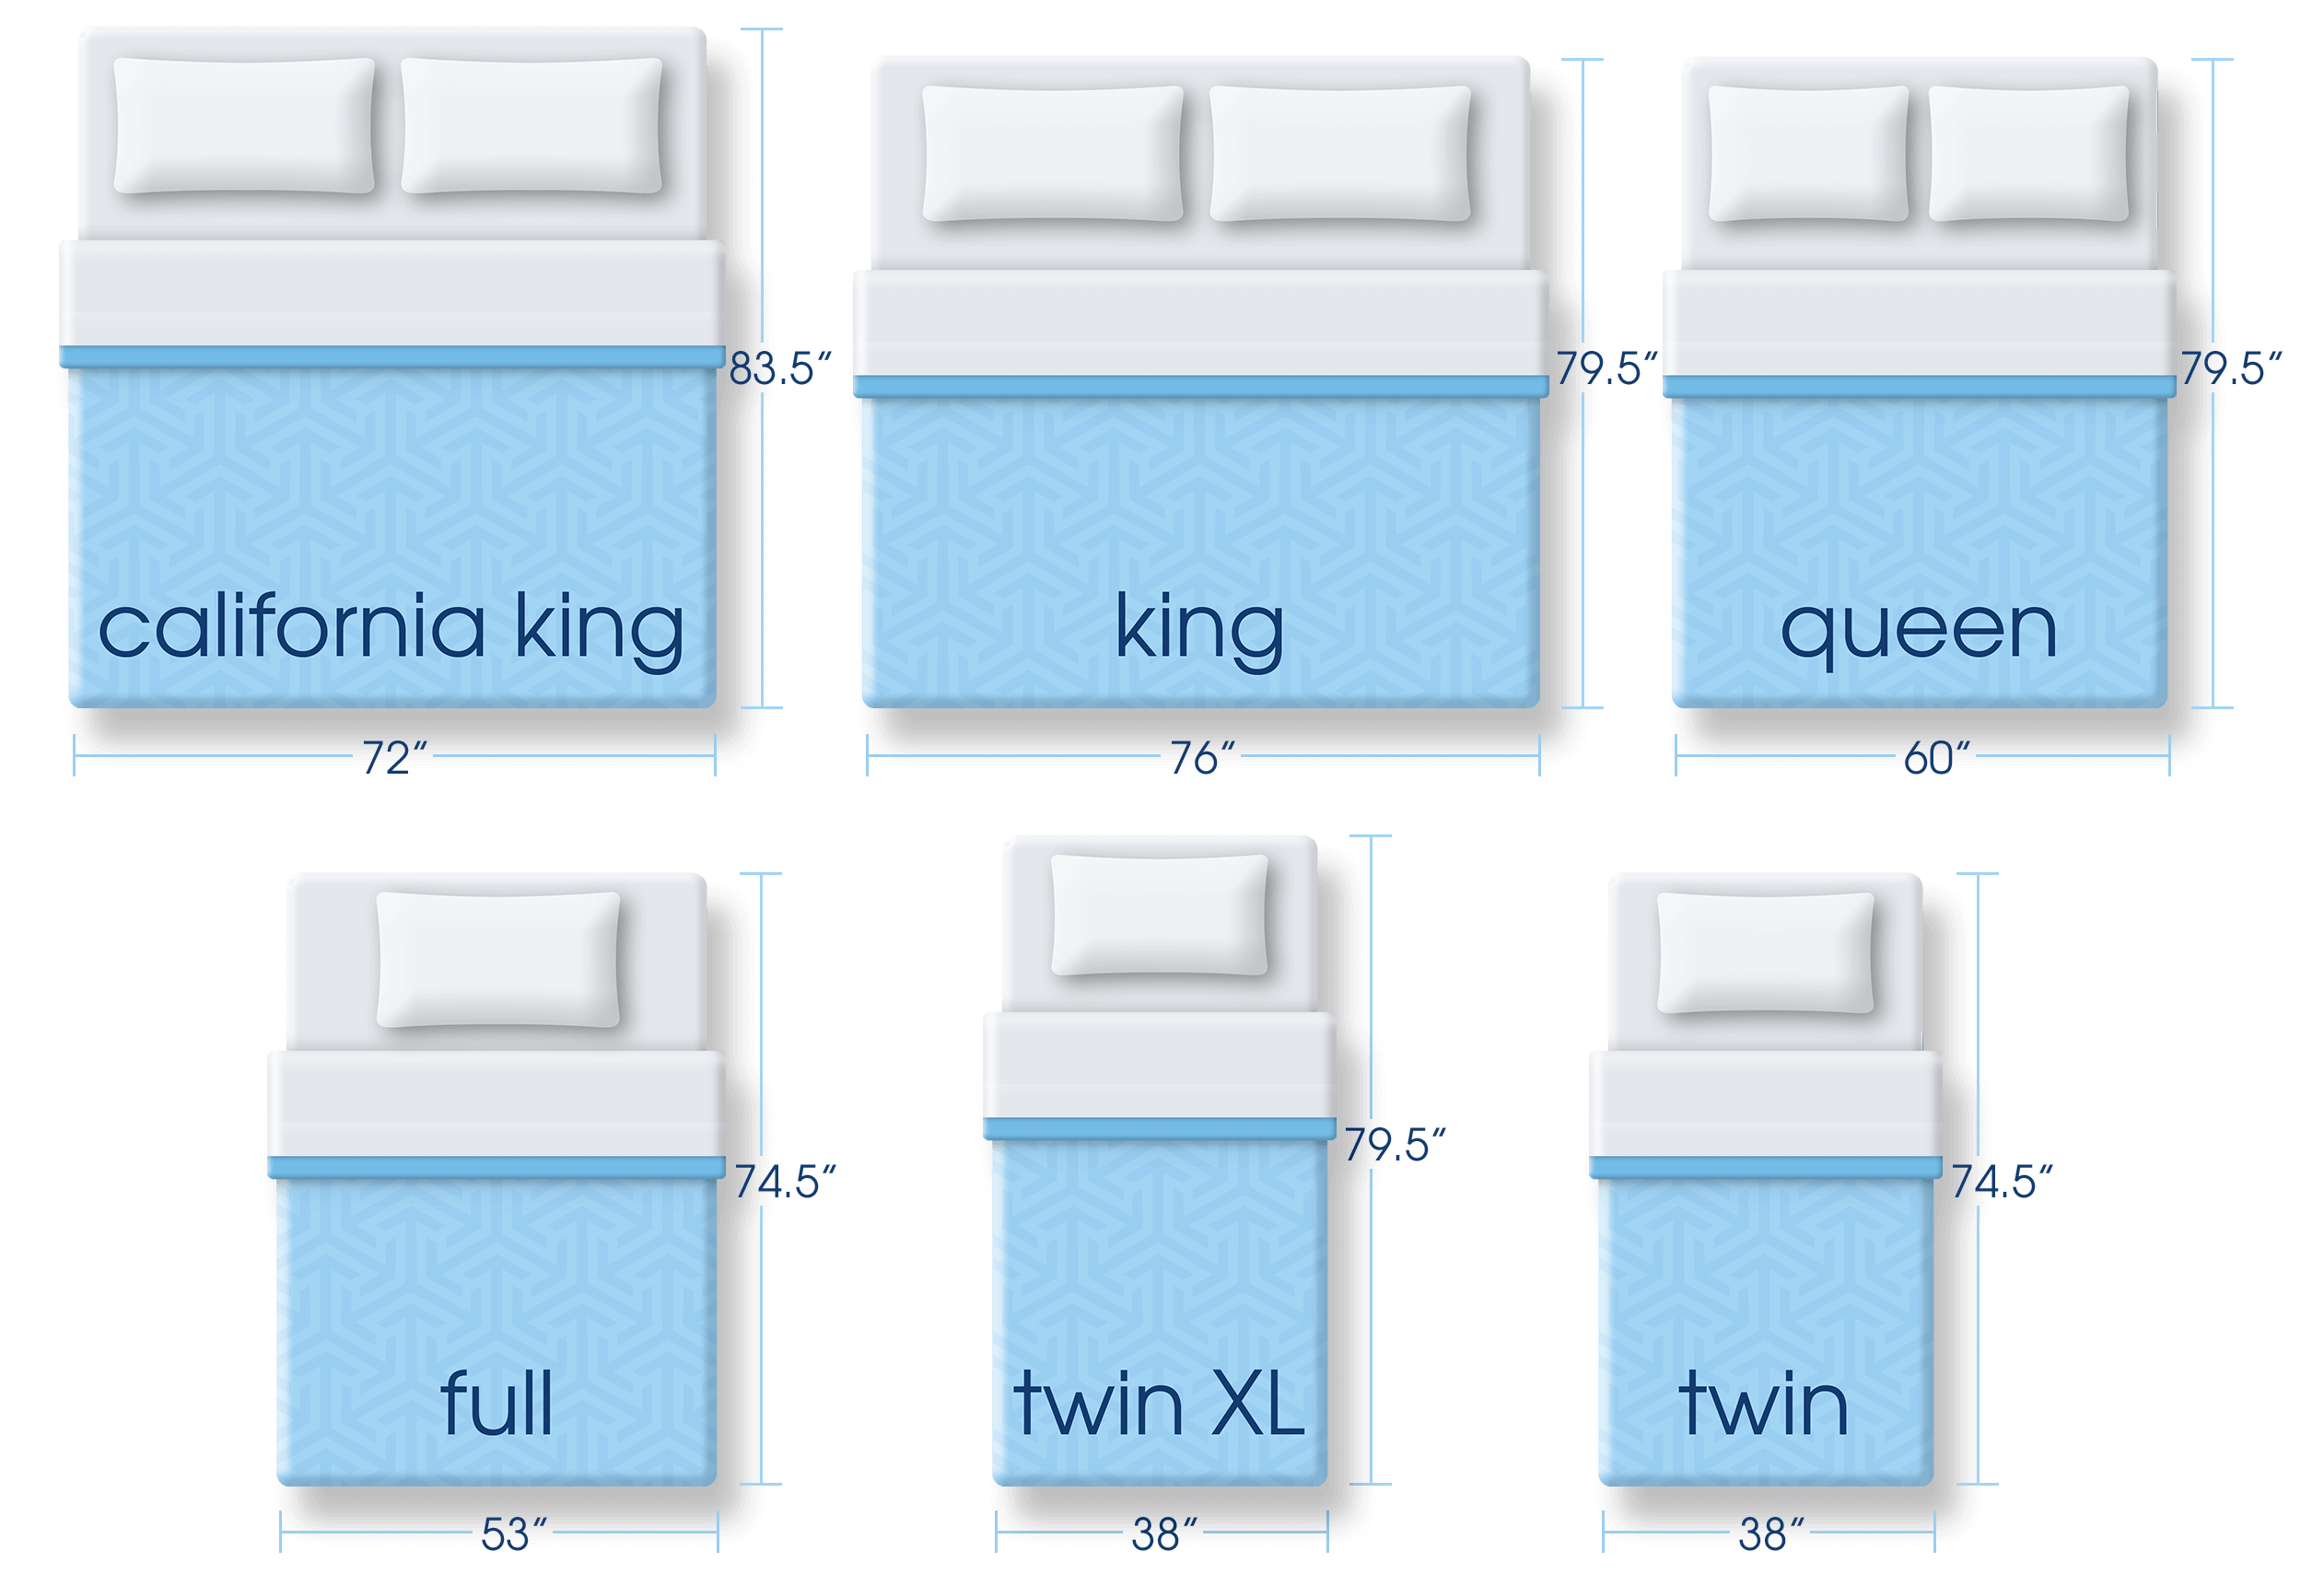 What Are The Dimensions Of A Queen Size Mattress